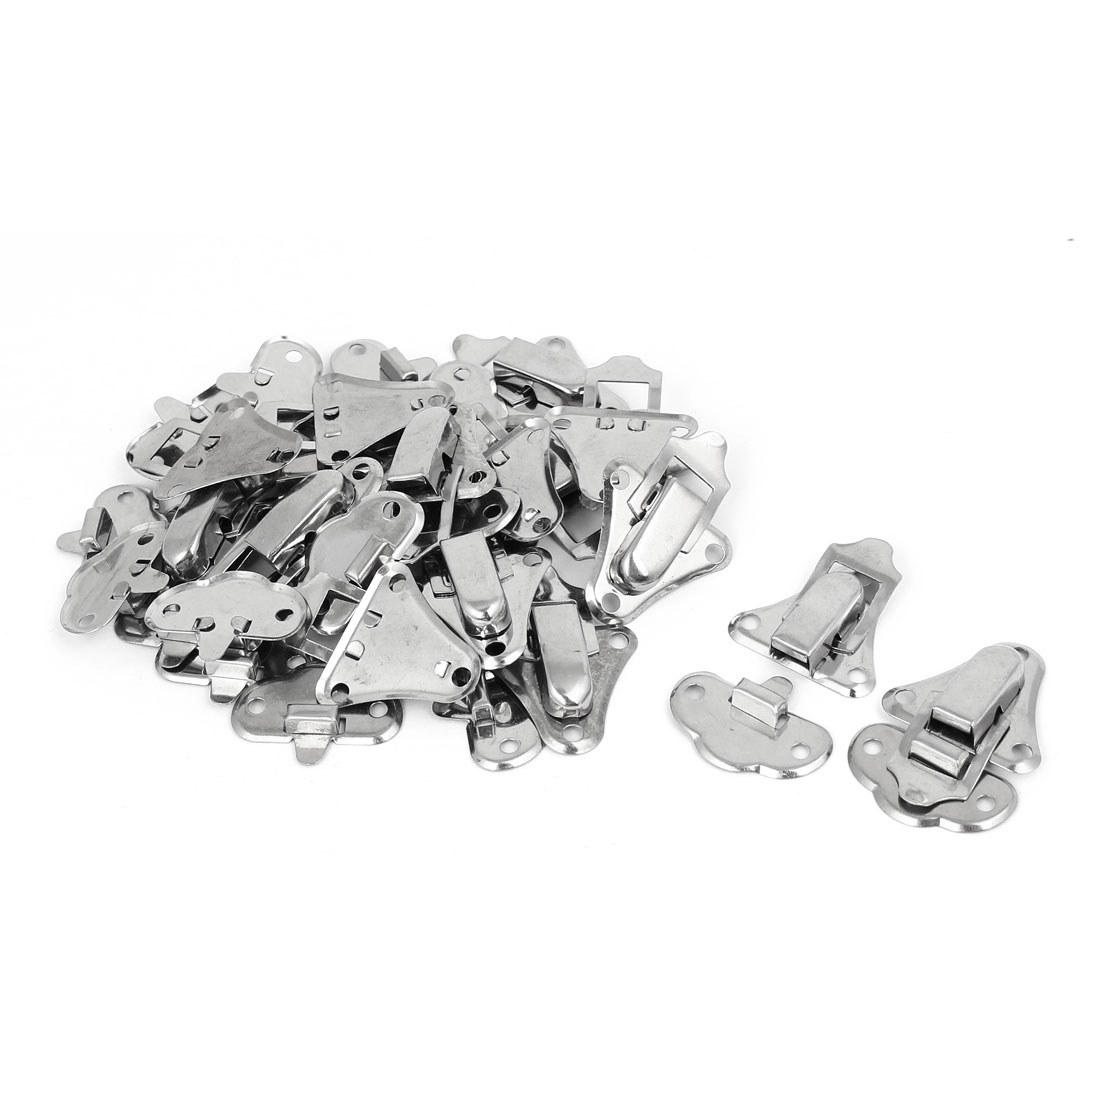 Box Suitcase Stainless Steel Toggle Latch Catch Hasp Lock Silver Tone 20pcs